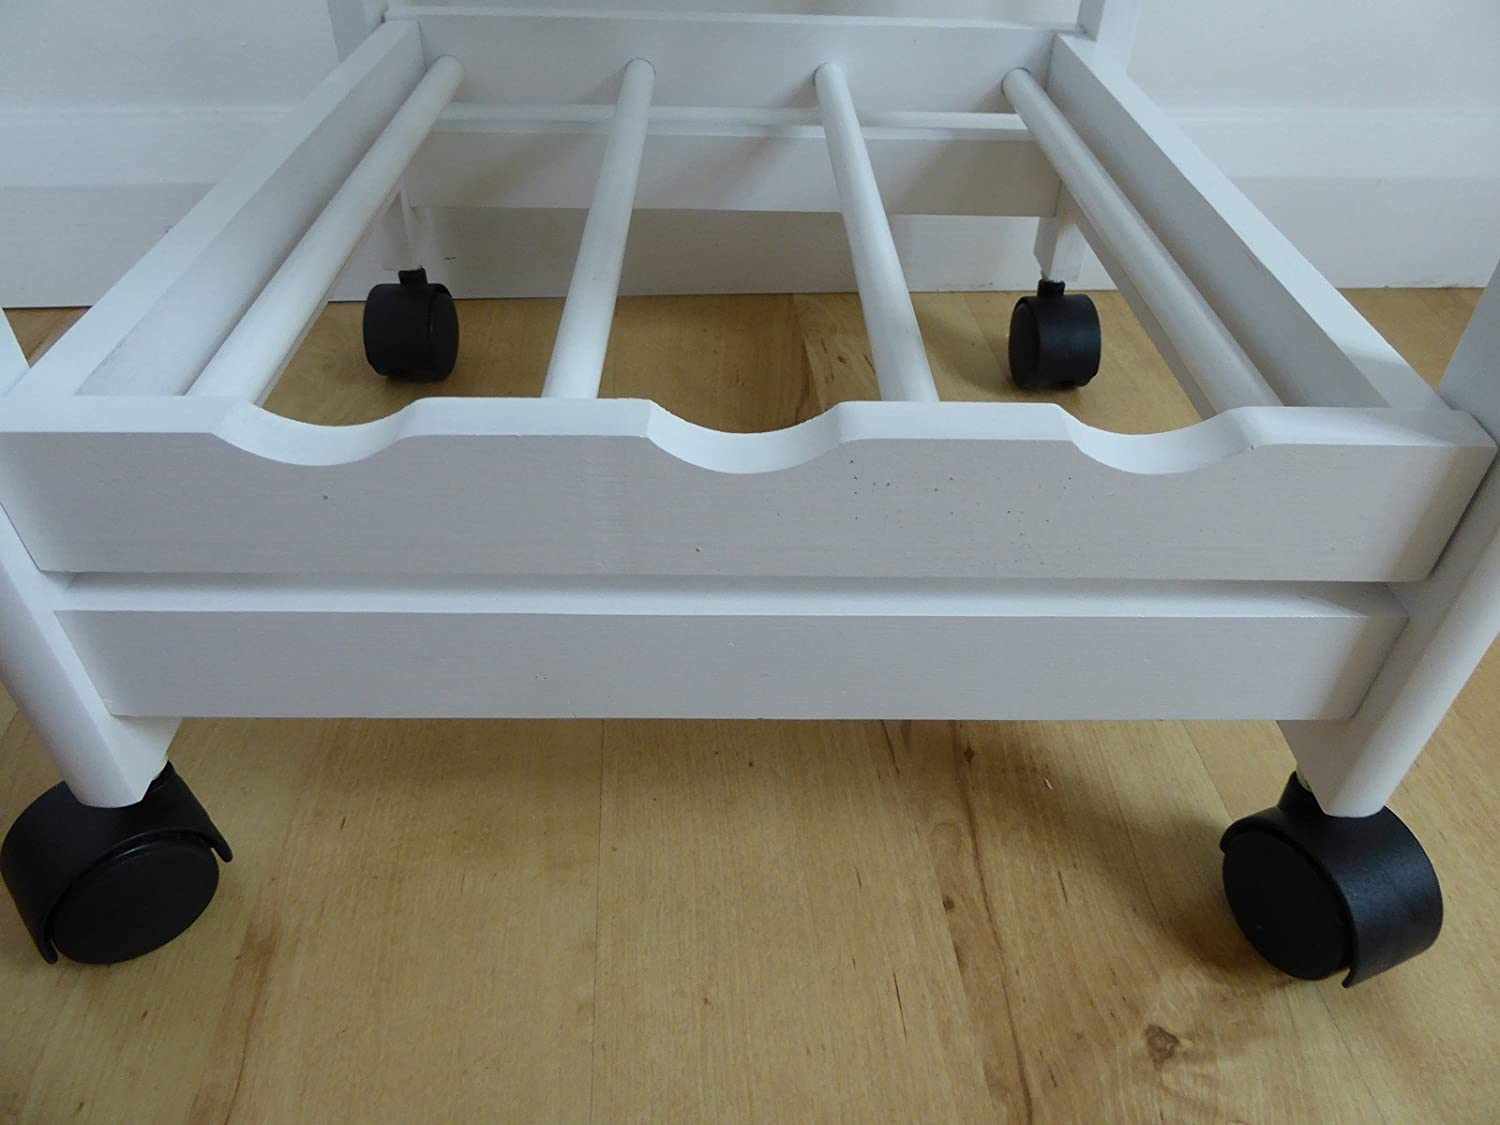 White Kitchen Trolley Table With Wheels Drawer Wooden Shelves And ...